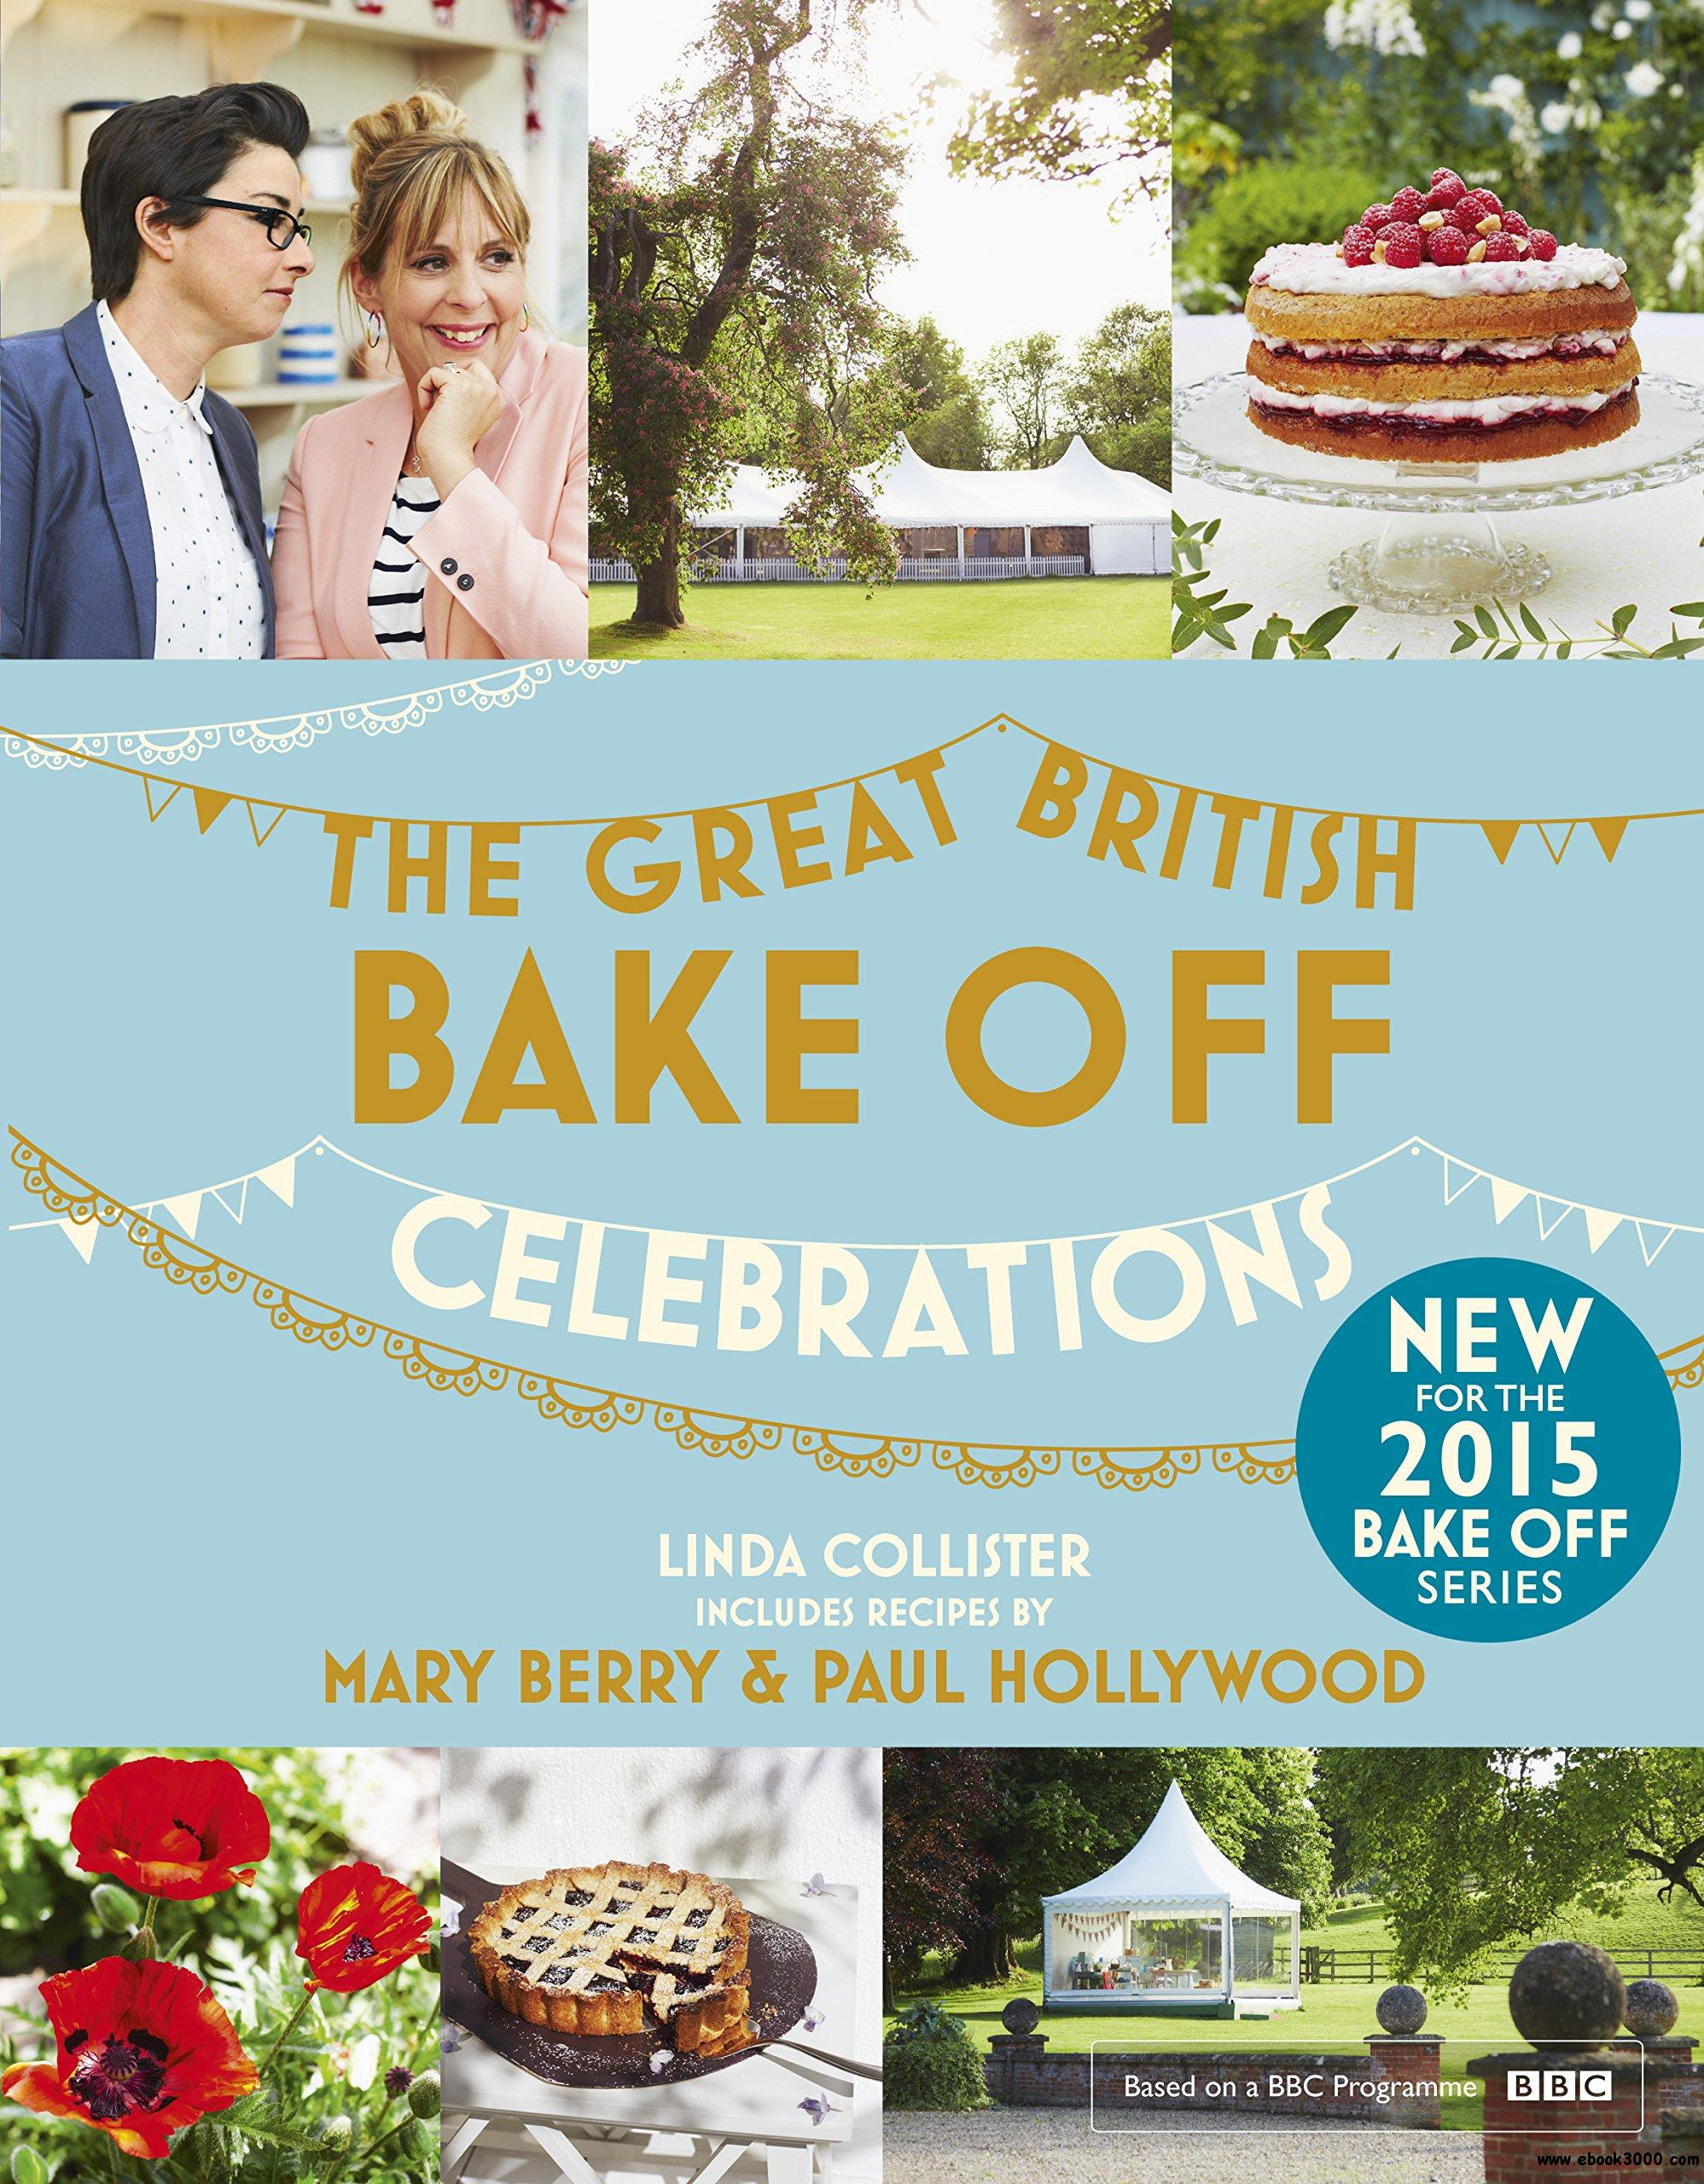 When does The Great British Bake Off start 2019?